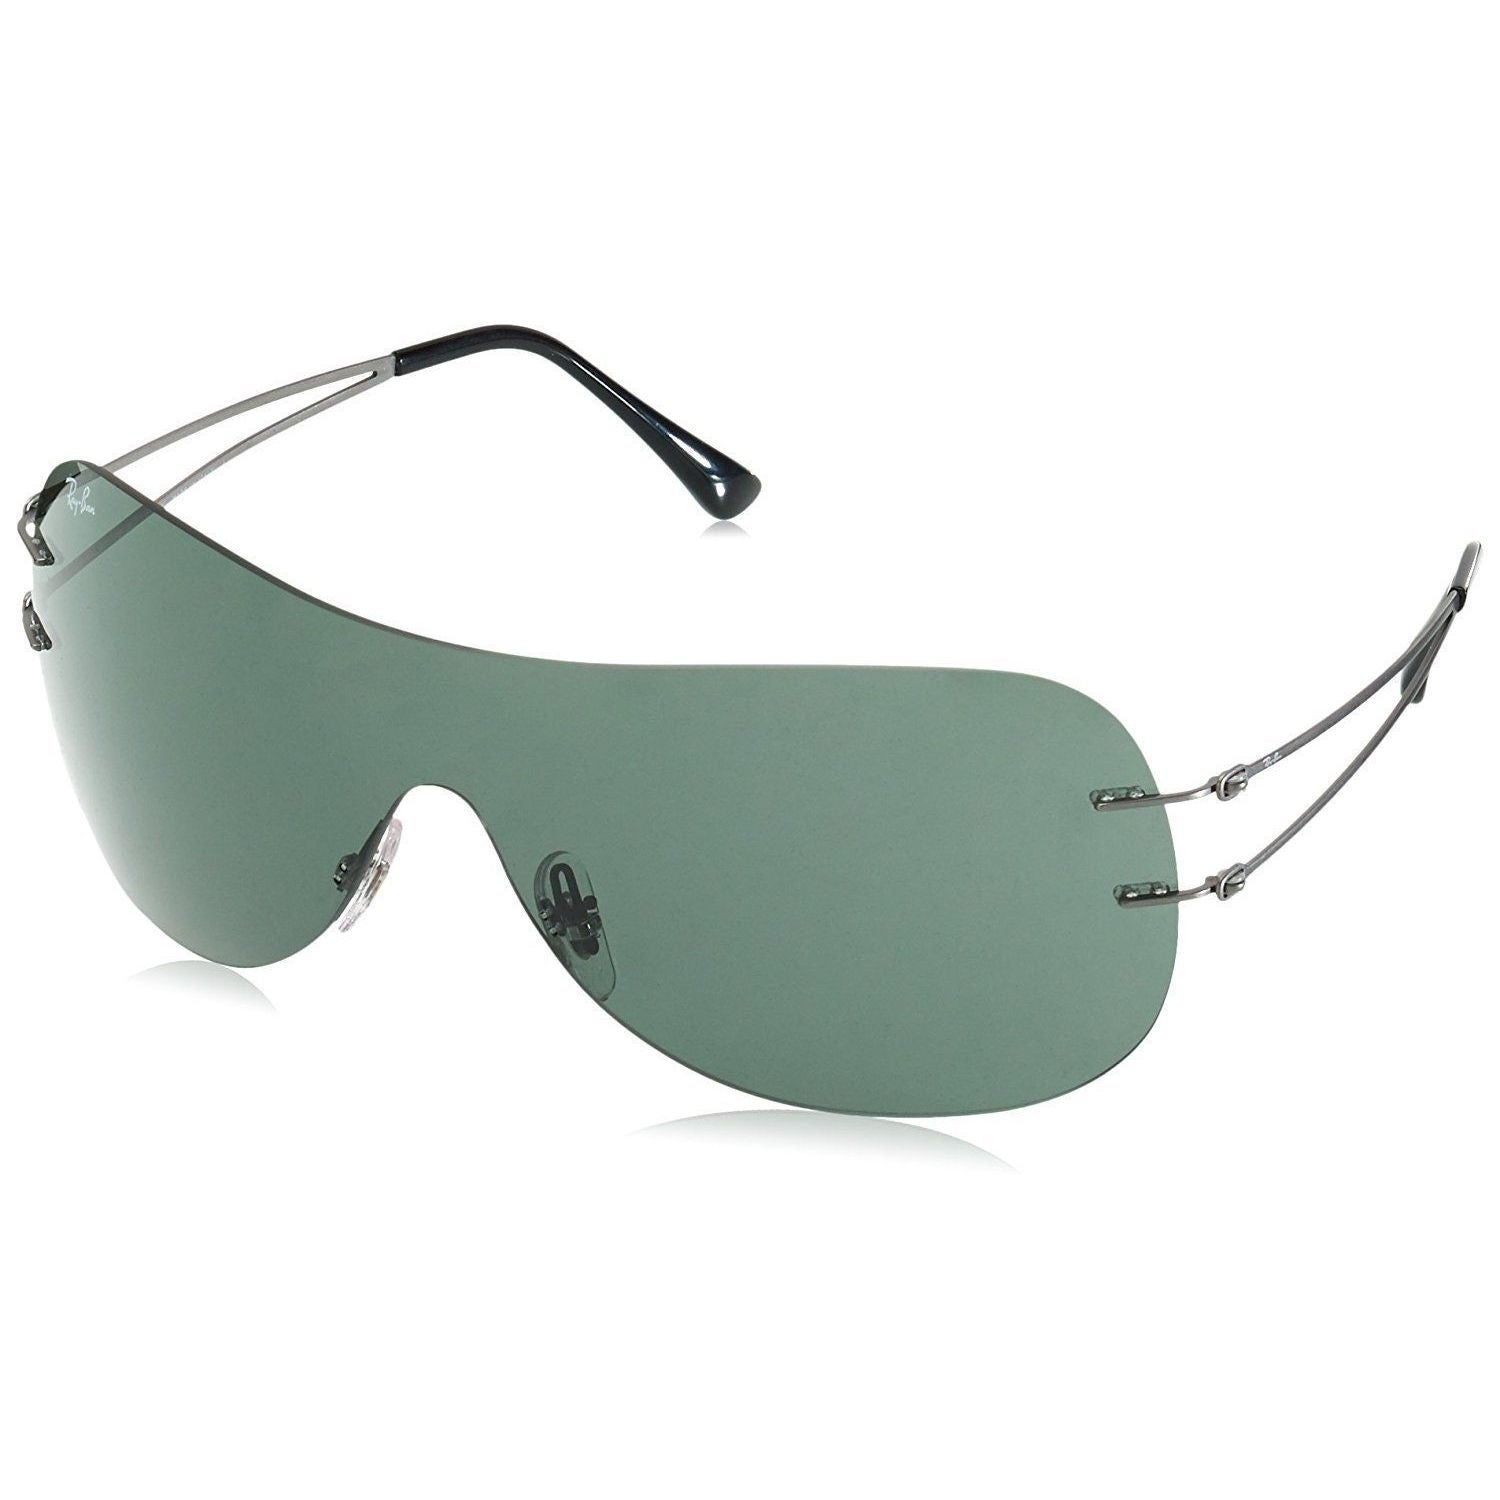 29652b86f9 Shop Ray-Ban RB8057 Unisex Rimless Green Classic Single Lens Sunglasses -  Free Shipping Today - Overstock - 15287214